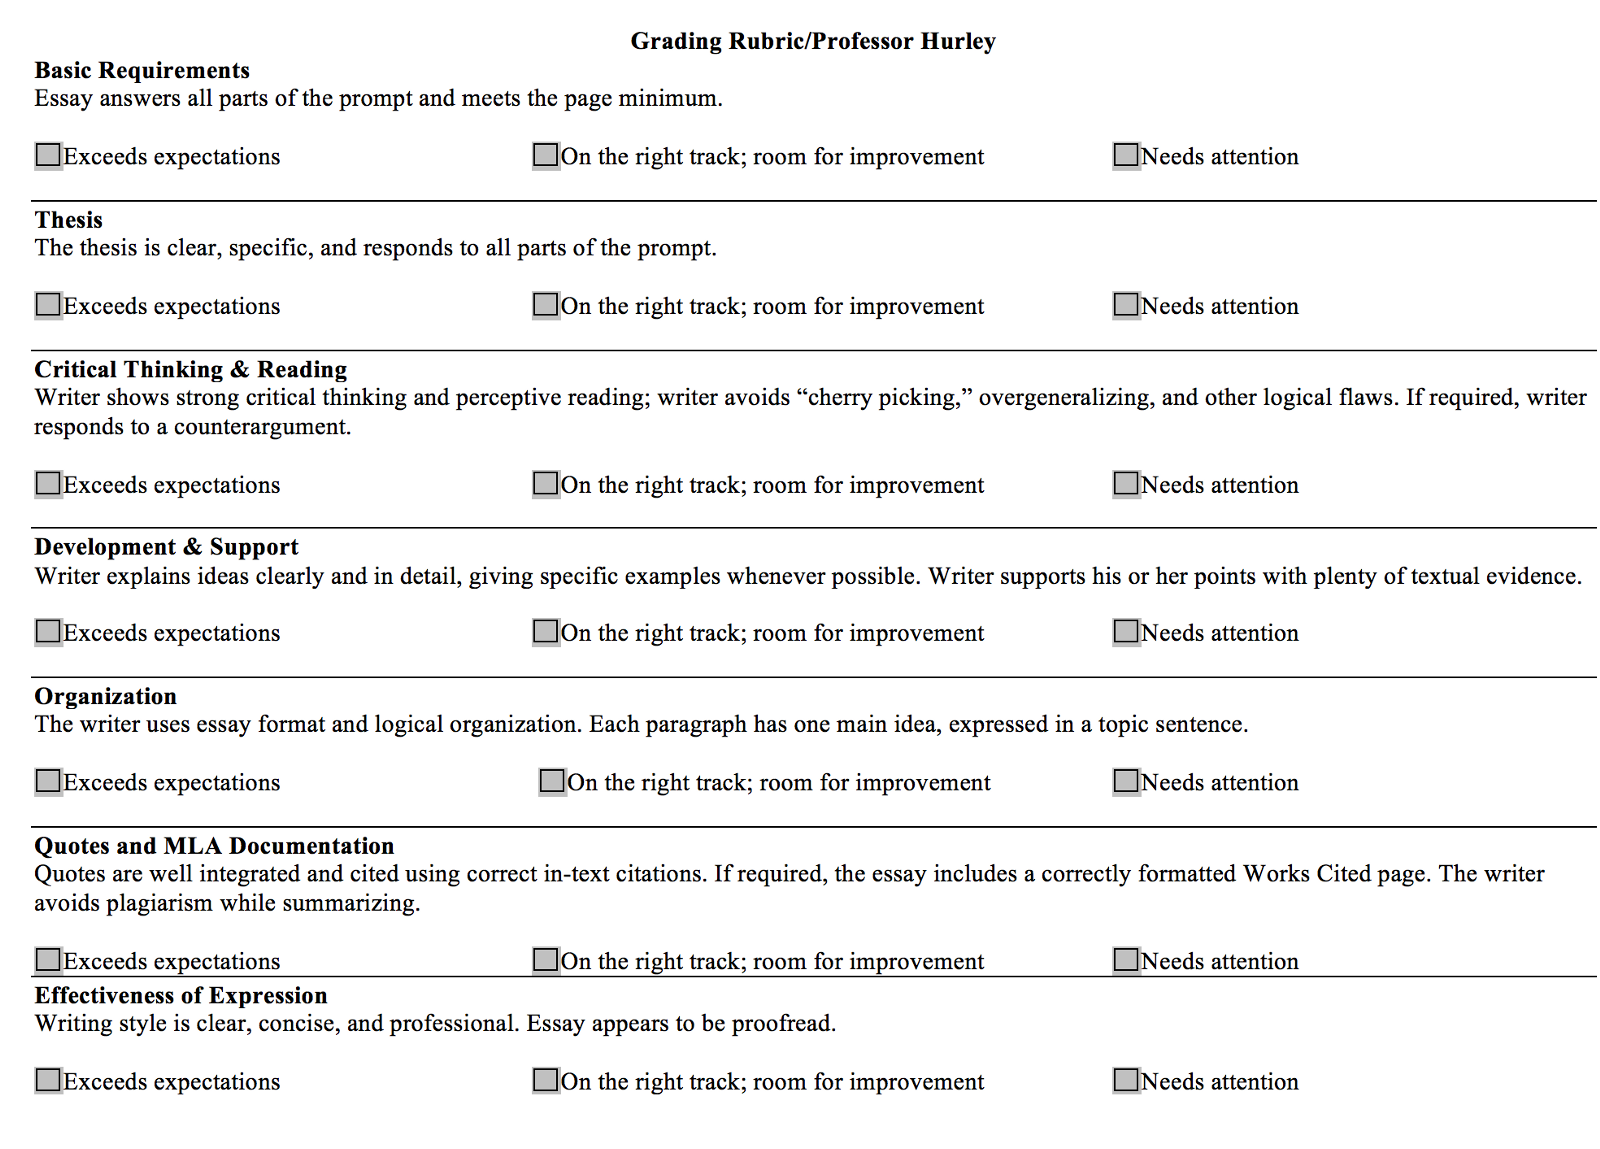 007 1l7bkjqmu2kth Pcoqy7bgg Rubrics For Essay Breathtaking Pdf Writing In Social Studies Full